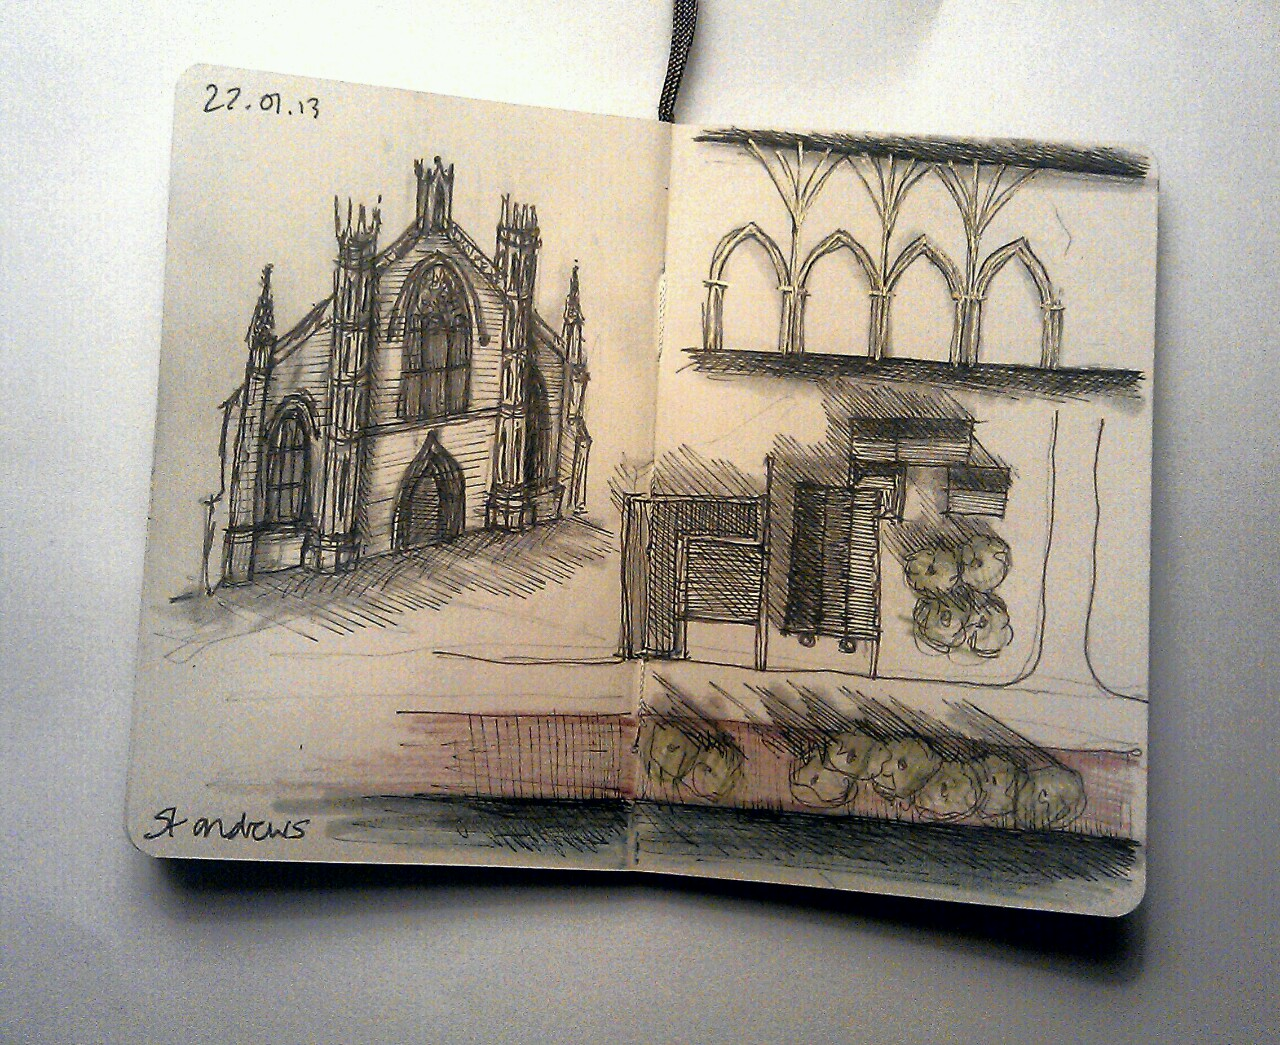 365 drawings later … day 357 … st andrews